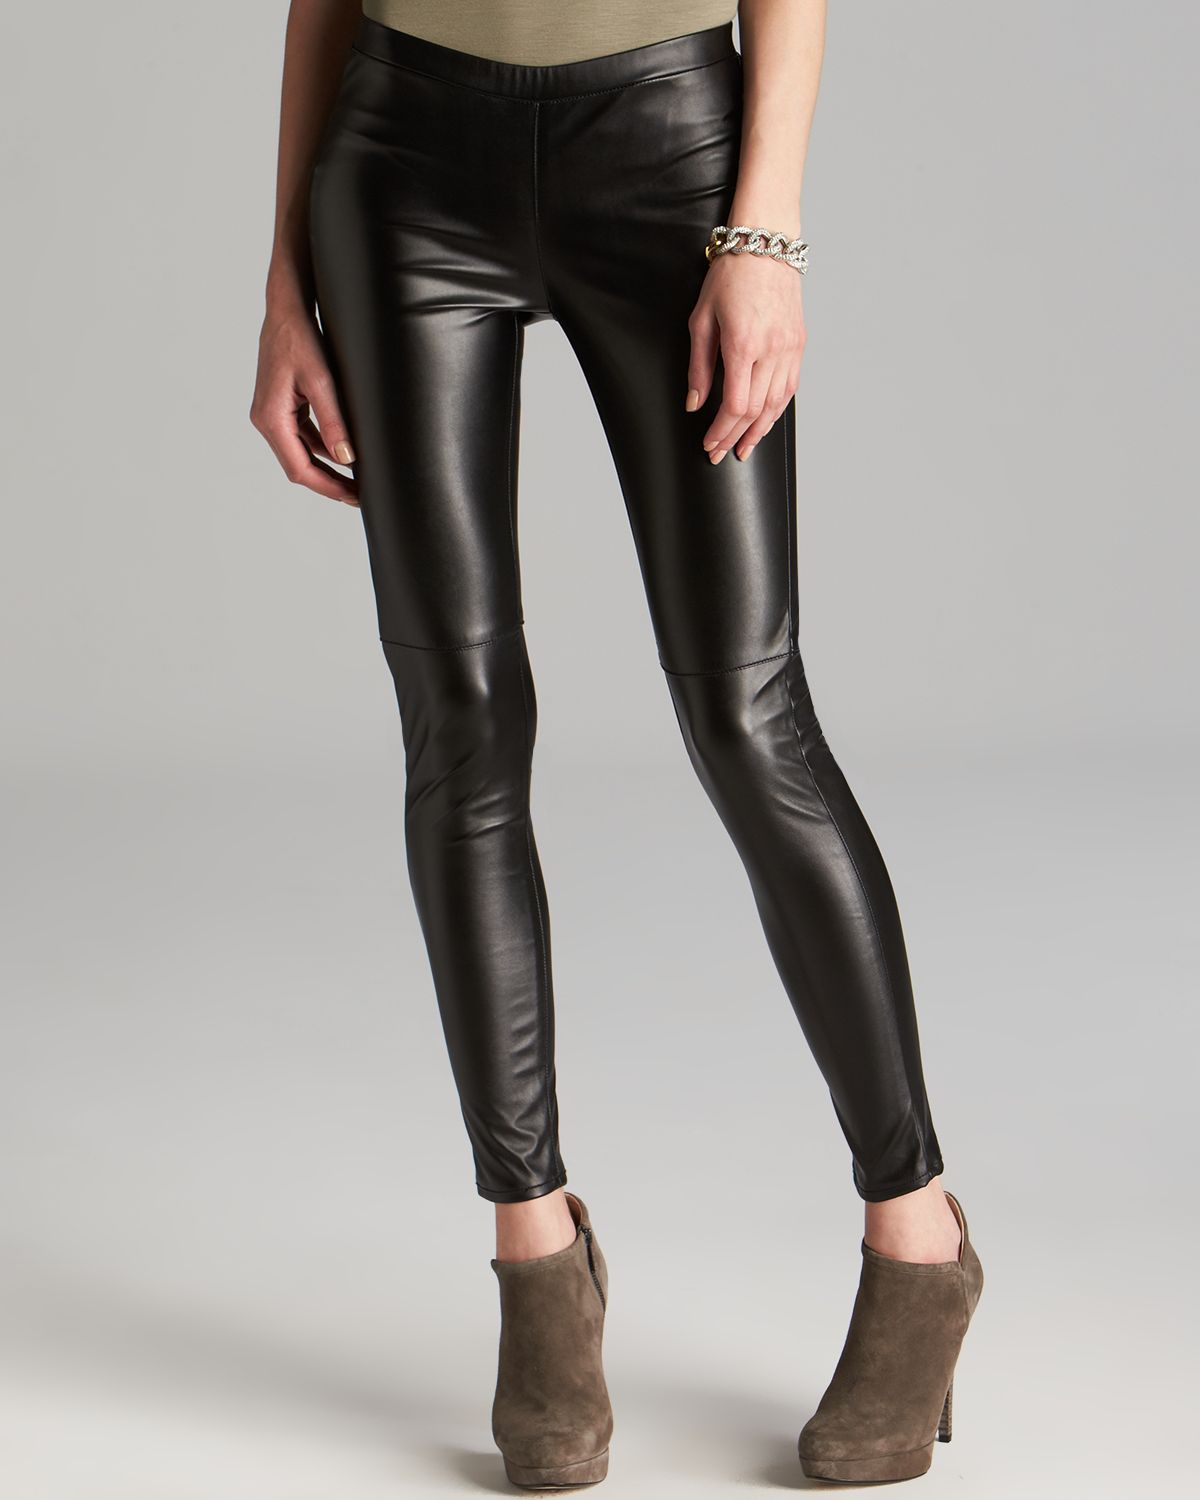 5e1861f662b2eb Gallery. Previously sold at: Bloomingdale's · Women's Faux Leather Pants ...